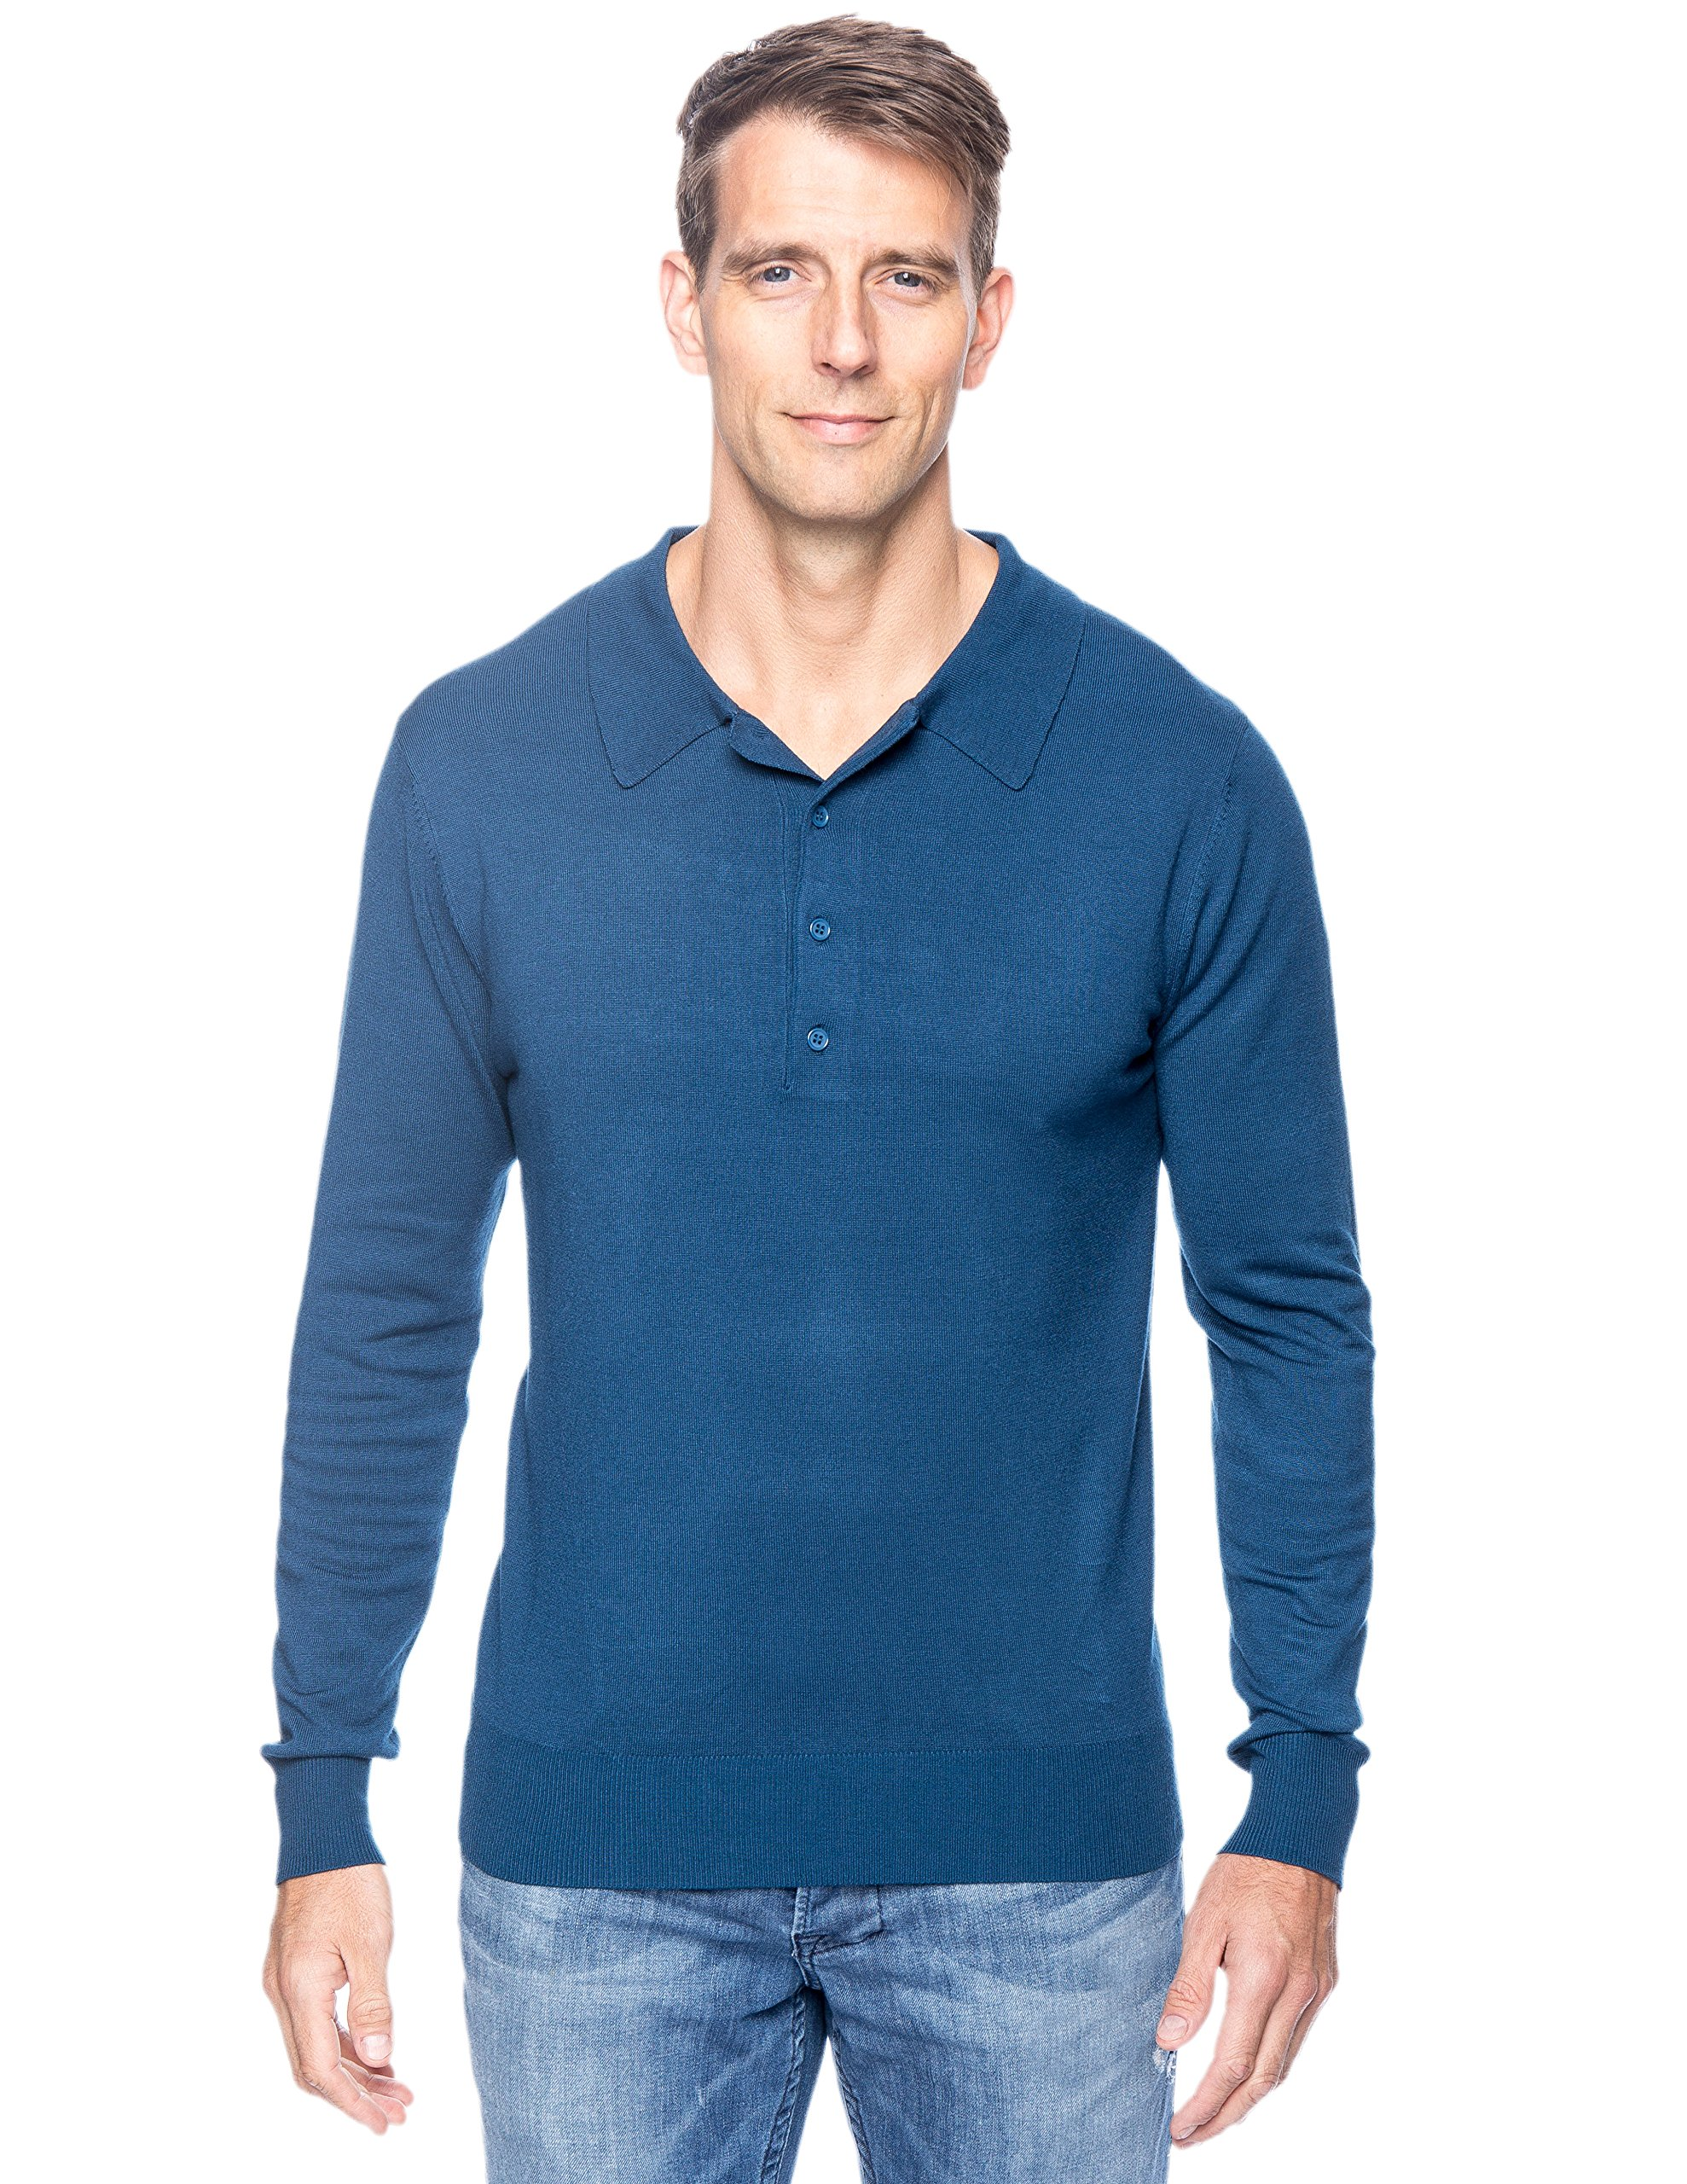 Tocco Reale Men's Classic Knit Long Sleeve Polo Sweater - Teal - L